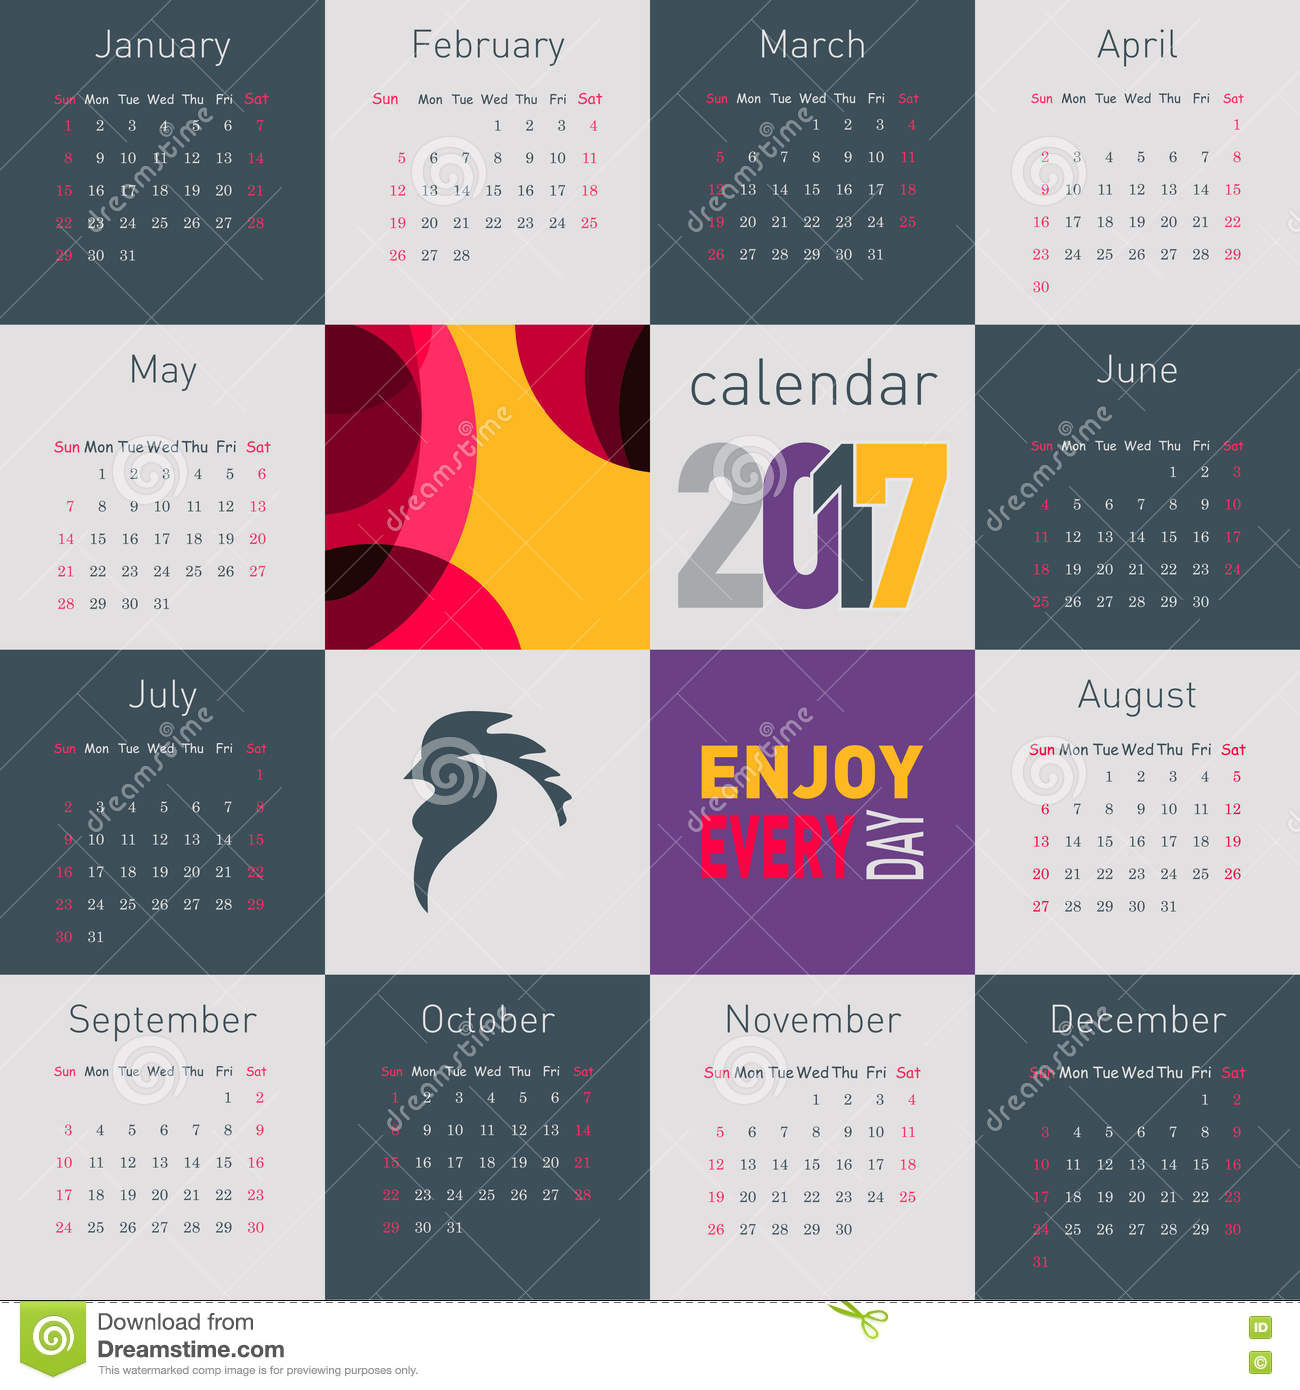 Chinese Calendar Illustration : Simple calendar with rooster symbol of on the